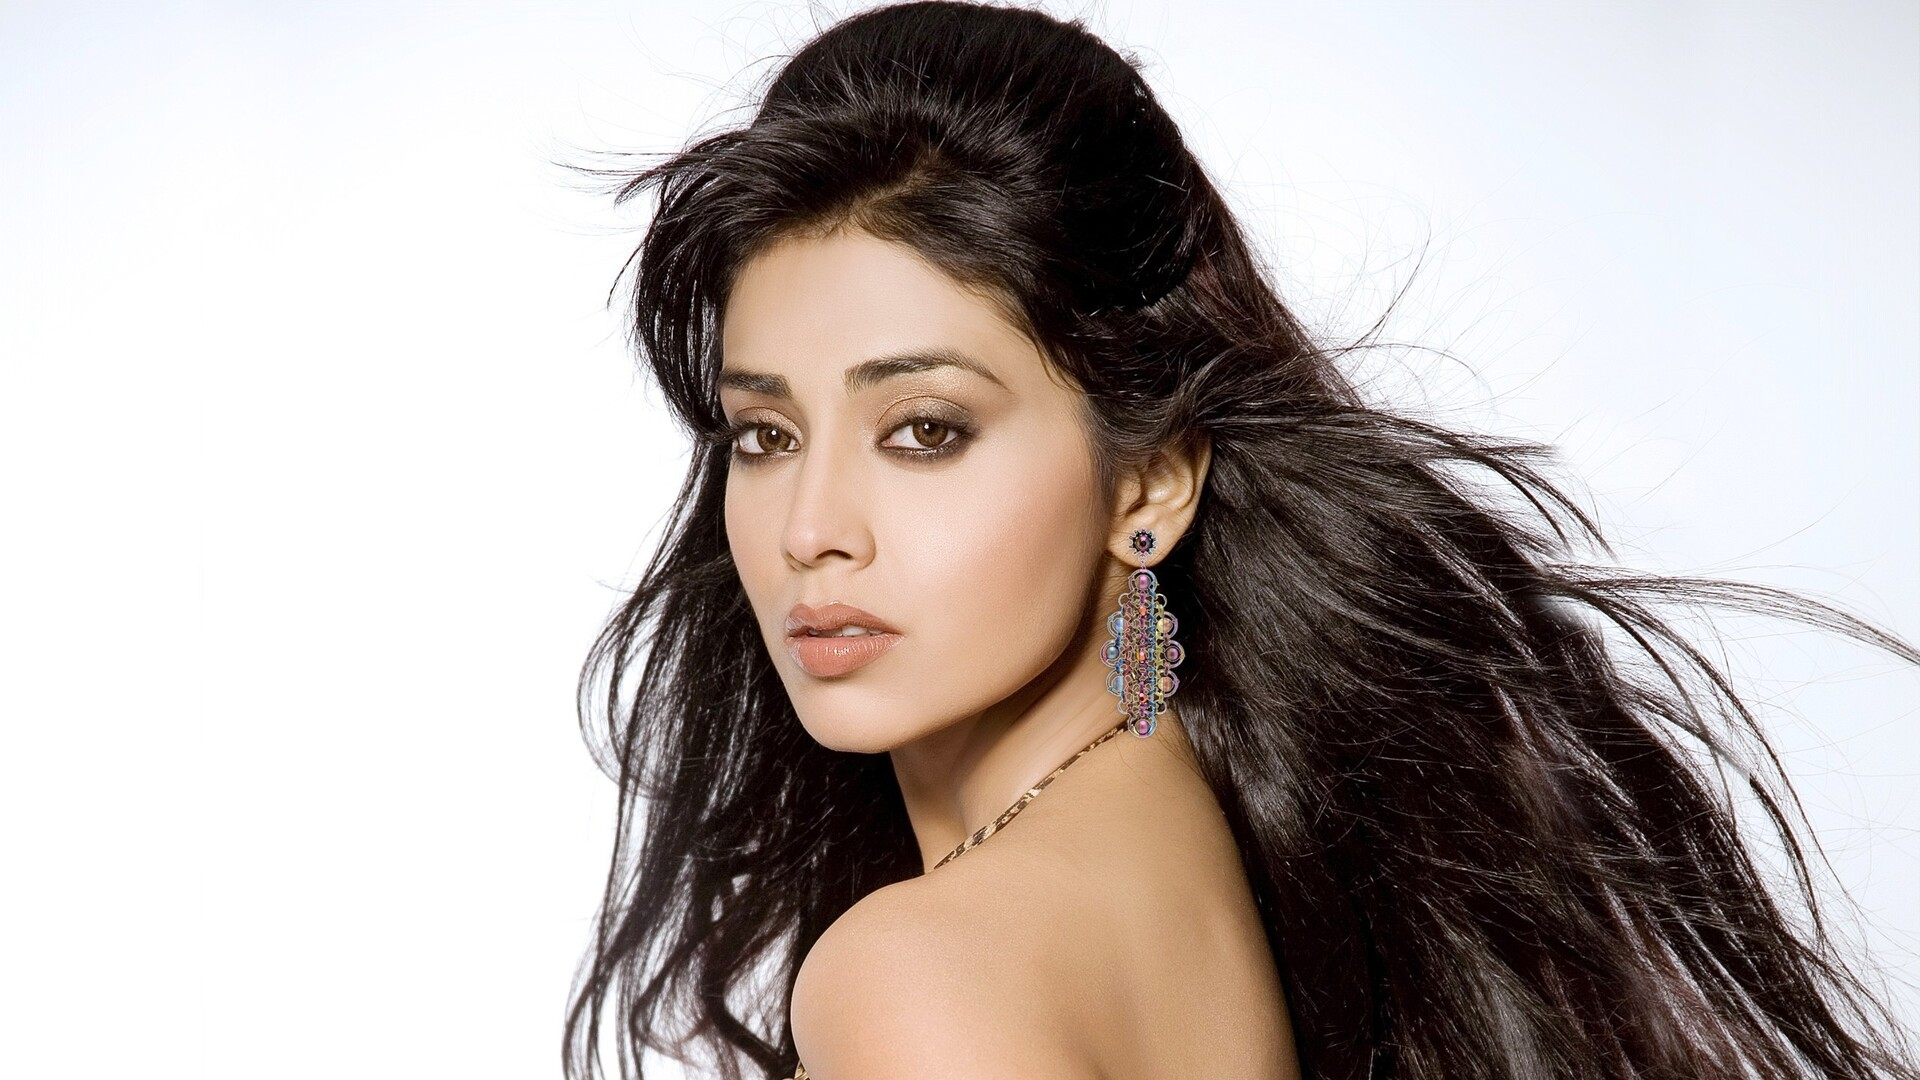 1920x1080 shriya saran laptop full hd 1080p hd 4k wallpapers, images